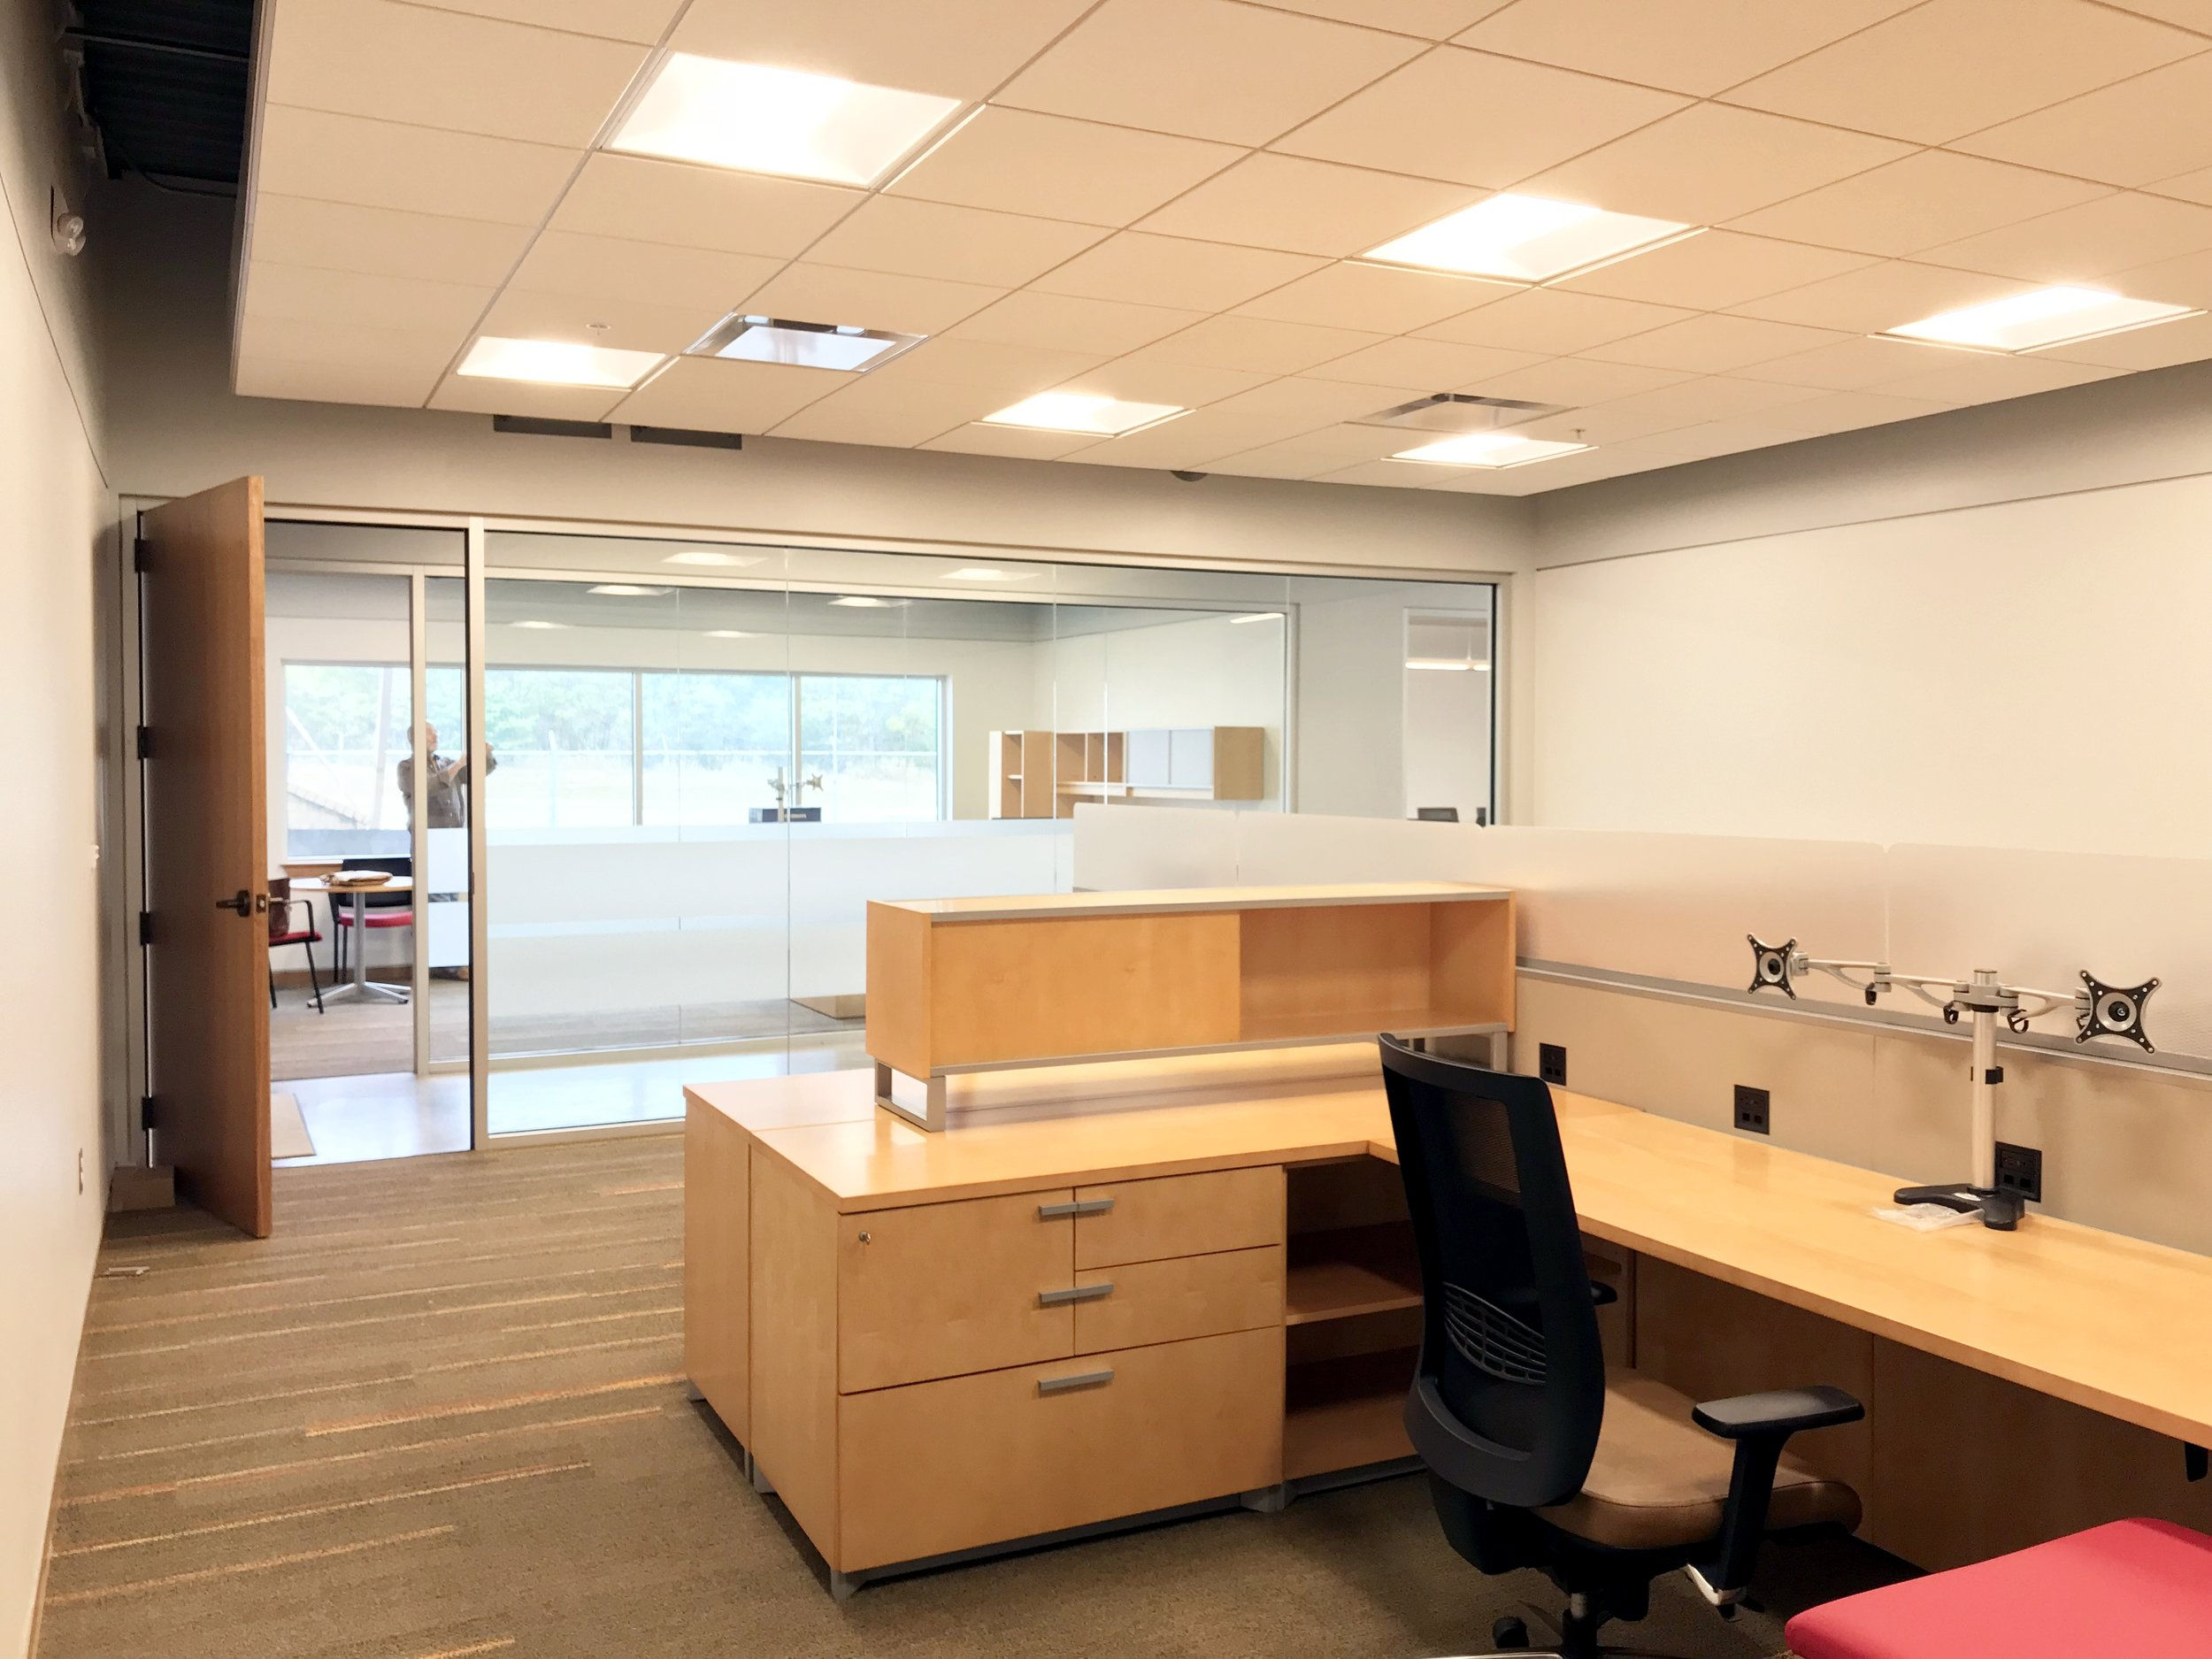 Cohort office completed